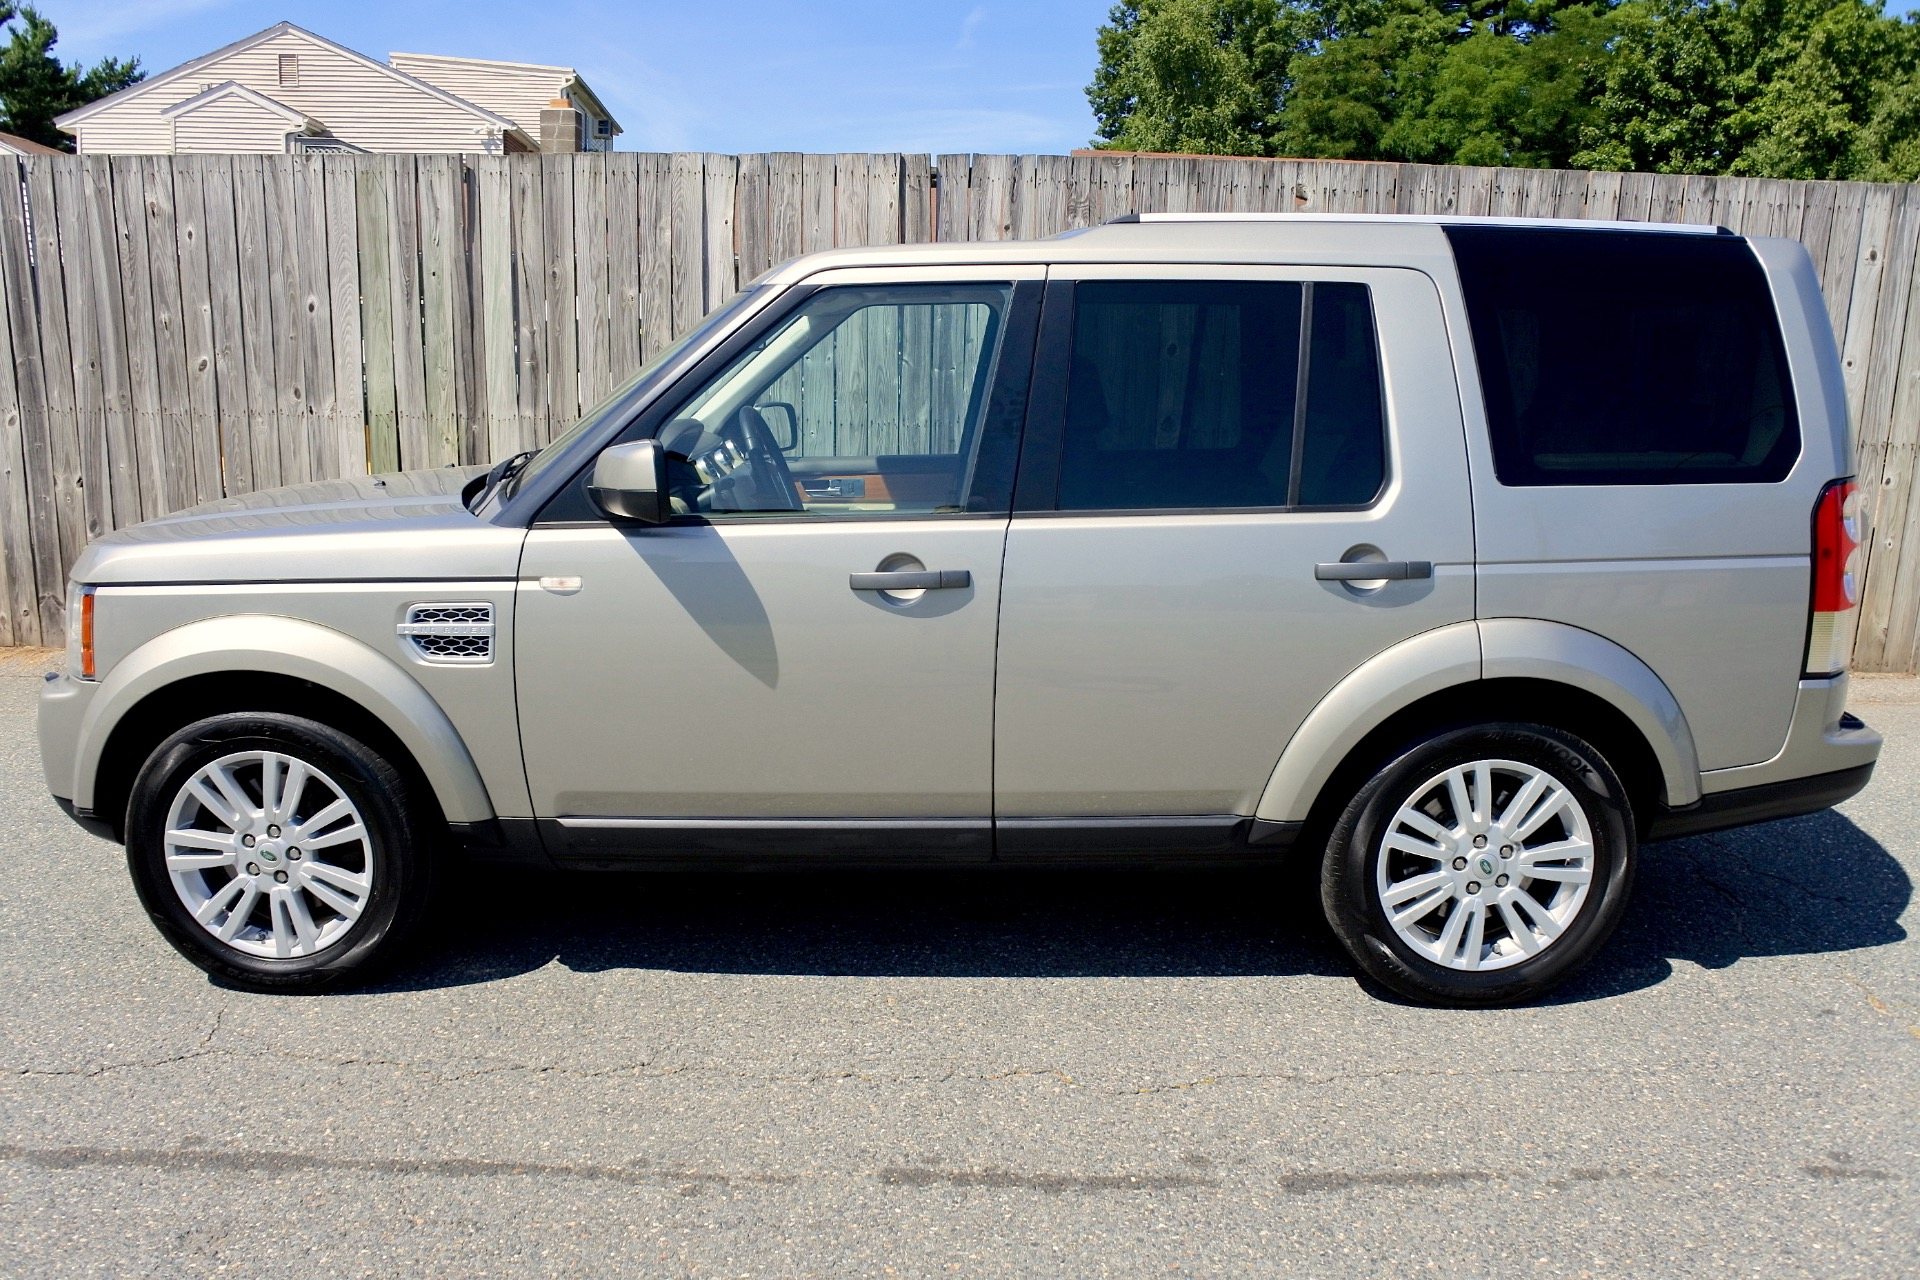 Used 2011 Land Rover Lr4 4WD 4dr V8 HSE Used 2011 Land Rover Lr4 4WD 4dr V8 HSE for sale  at Metro West Motorcars LLC in Shrewsbury MA 2